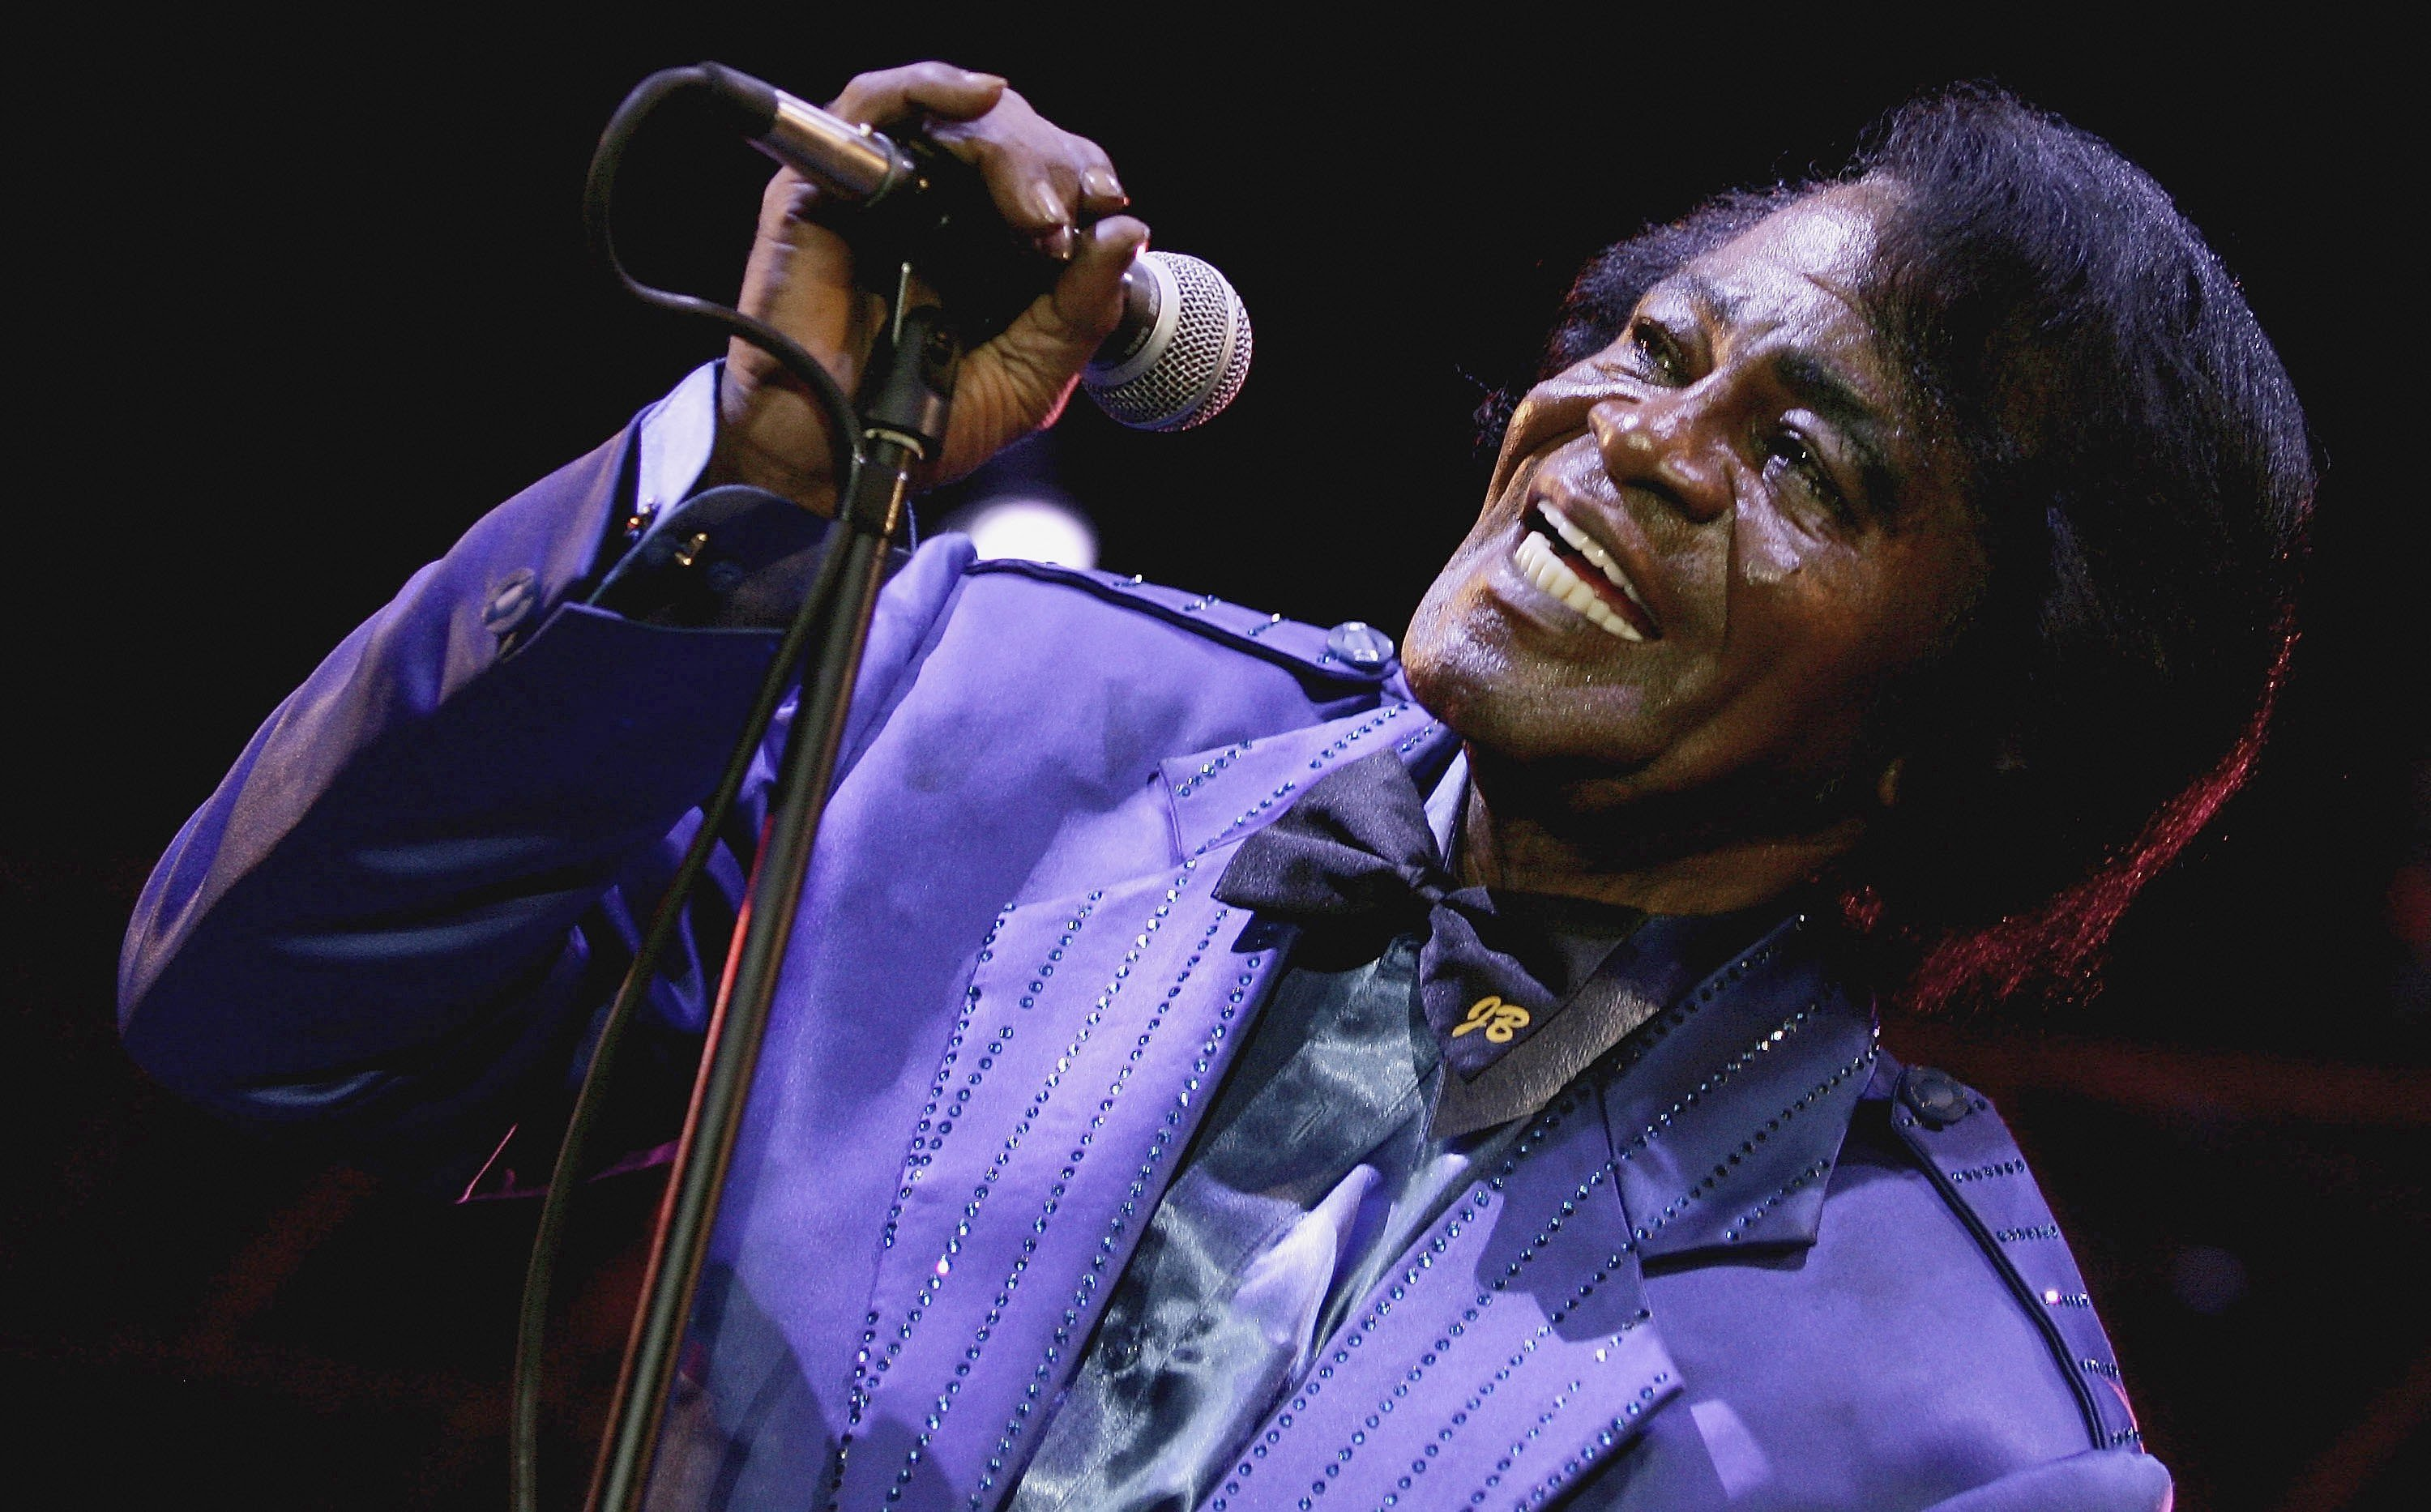 Singer James Brown performs as part of HM Tower Of London Festival Of Music's inaugural jazz and opera festival at HM Tower of London on July 4, 2006 | Photo: Getty Images